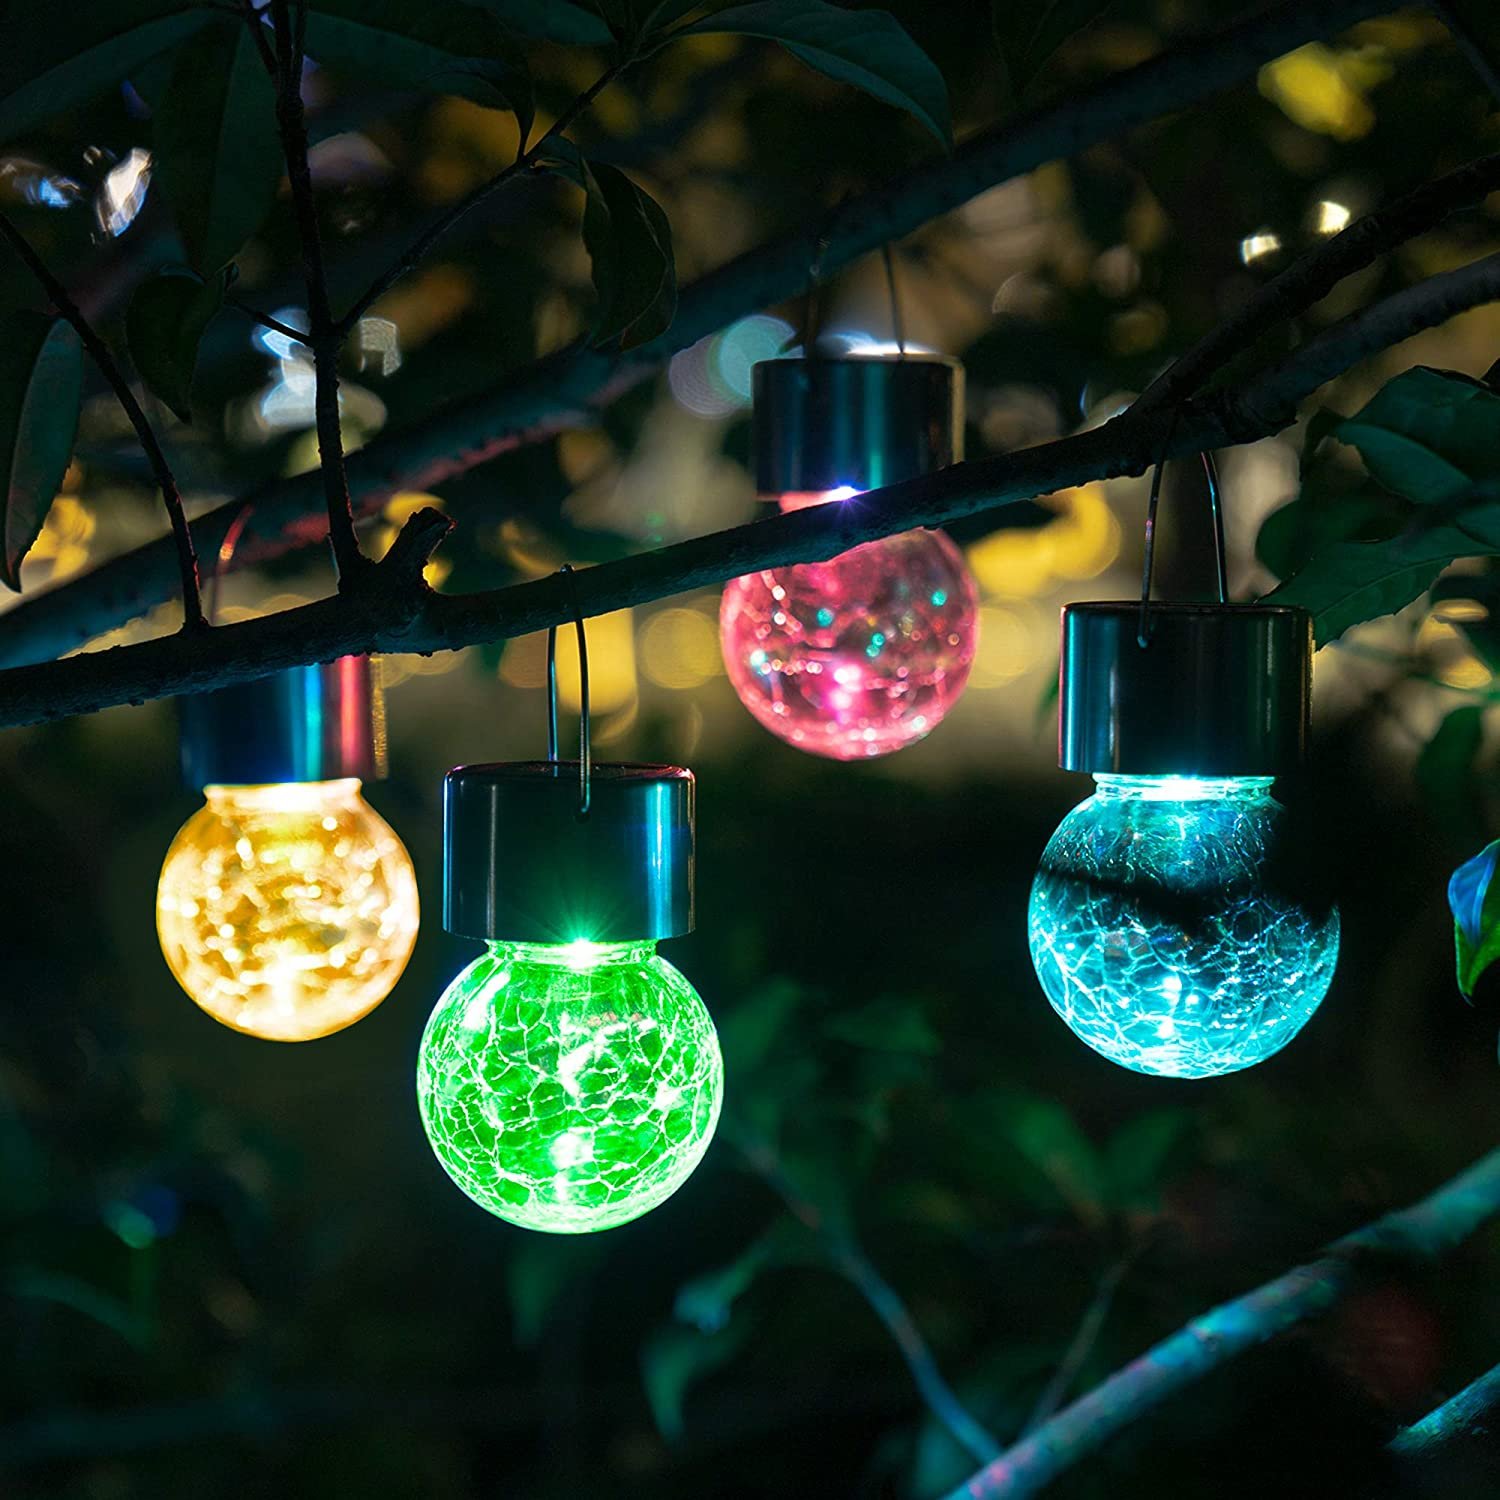 Solpex Hanging Solar Lights Outdoor,8 Pack Christmas Decorative Cracked Glass Ball Light, Solar Powered Waterproof Globe Lighting, Hanging Globe Solar Lights for Garden, Yard, Patio, Lawn, Flower Bed